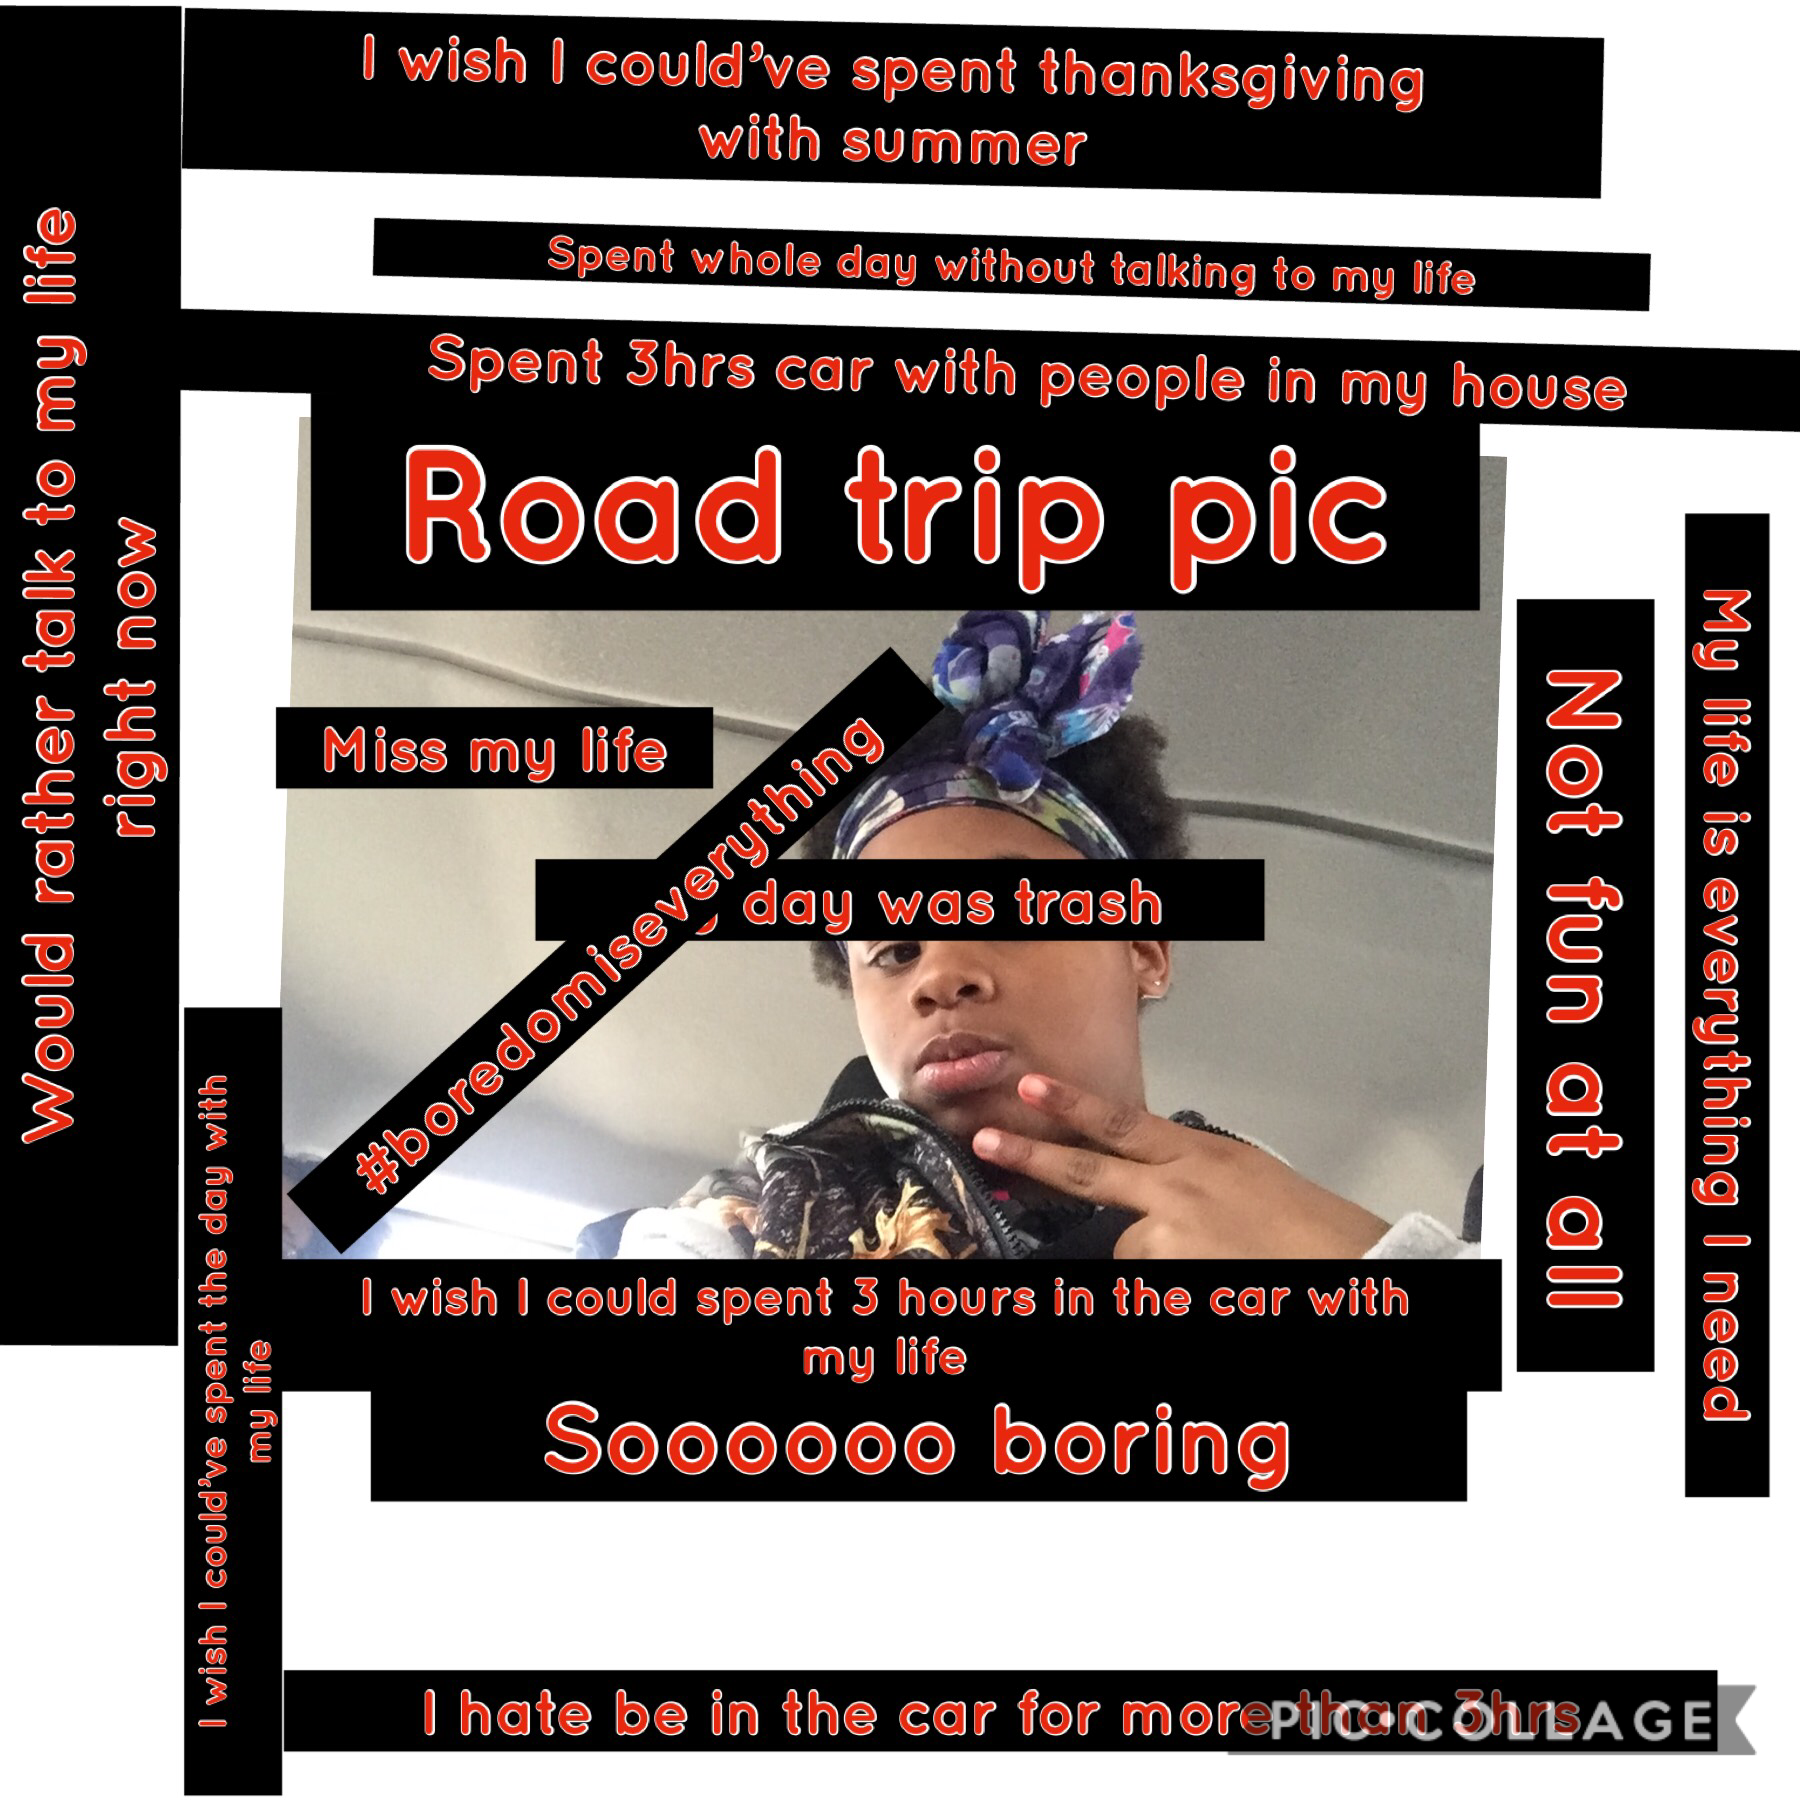 My road trip On thanksgiving  Sooooooooooooooooooooooooooooooooooooooooooooooooooooo boring